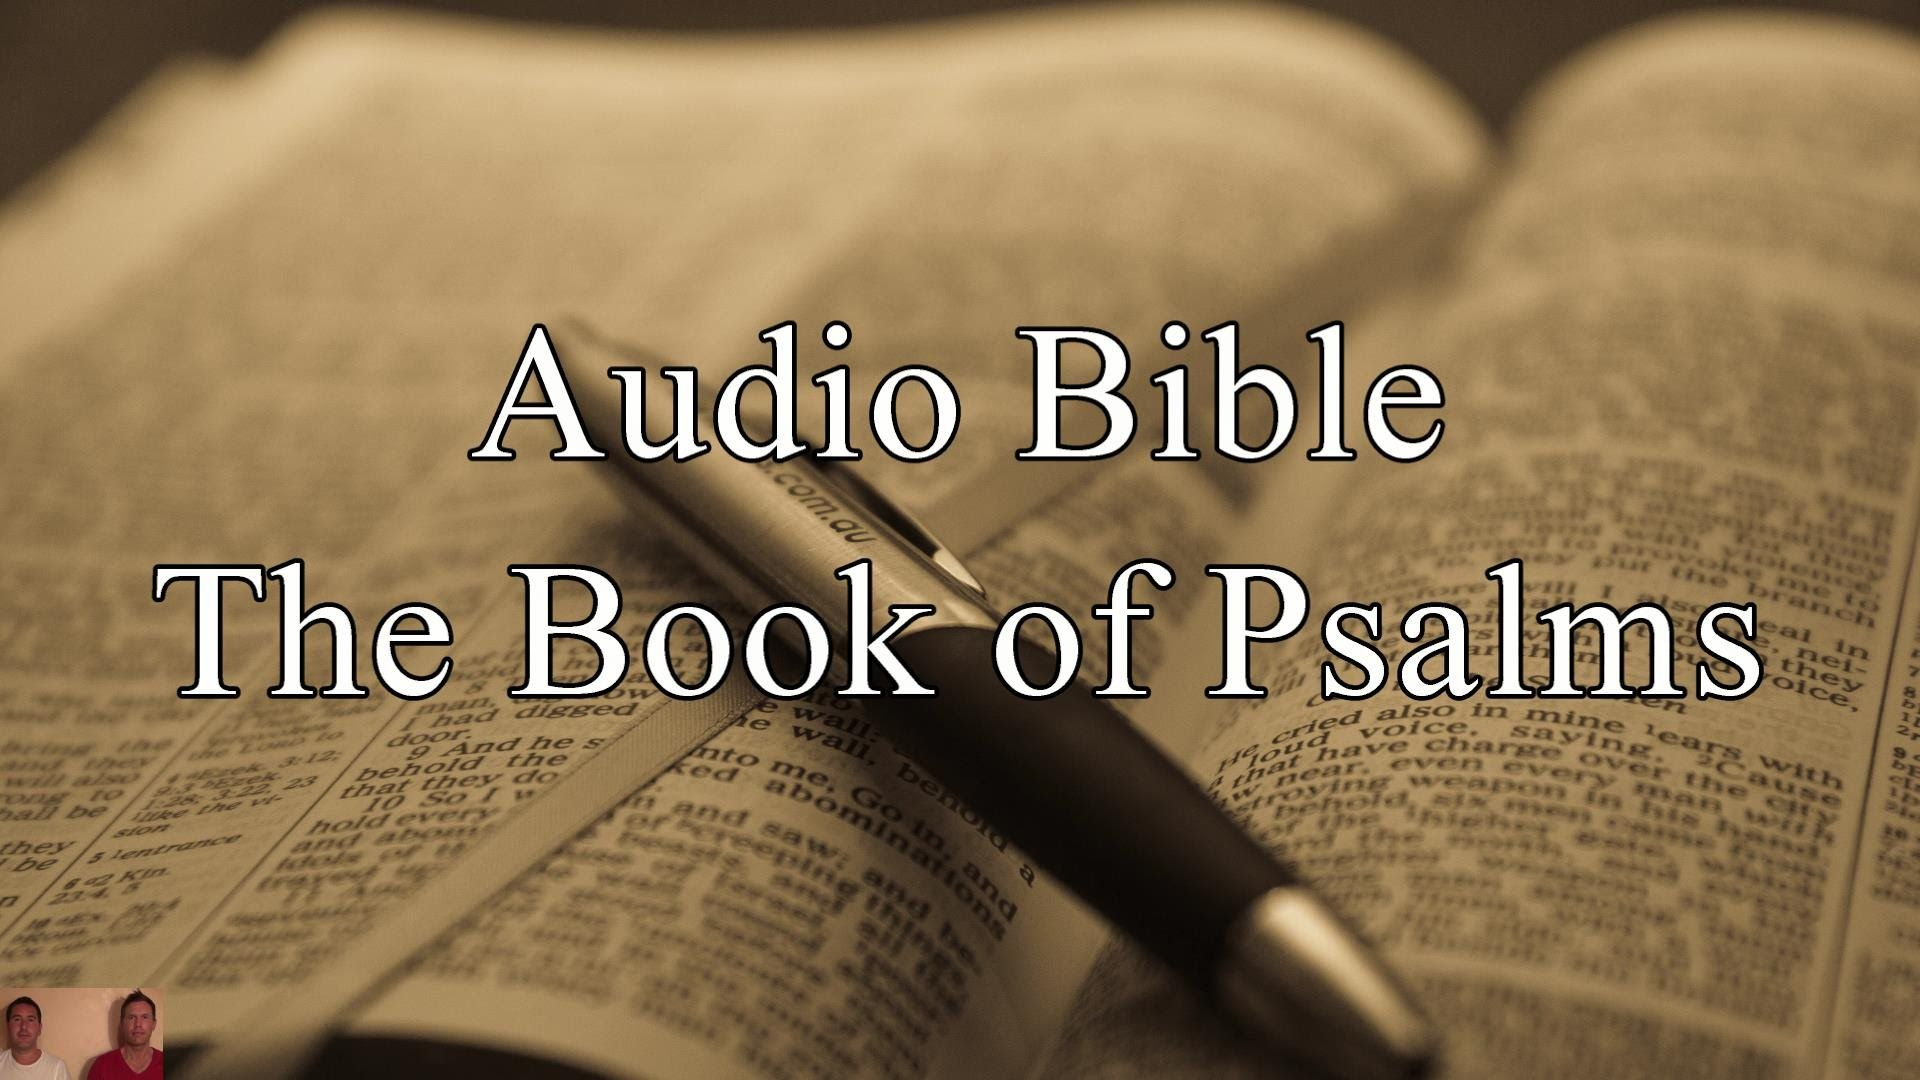 The Book of Psalms - KJV Audio Holy Bible - High Quality and